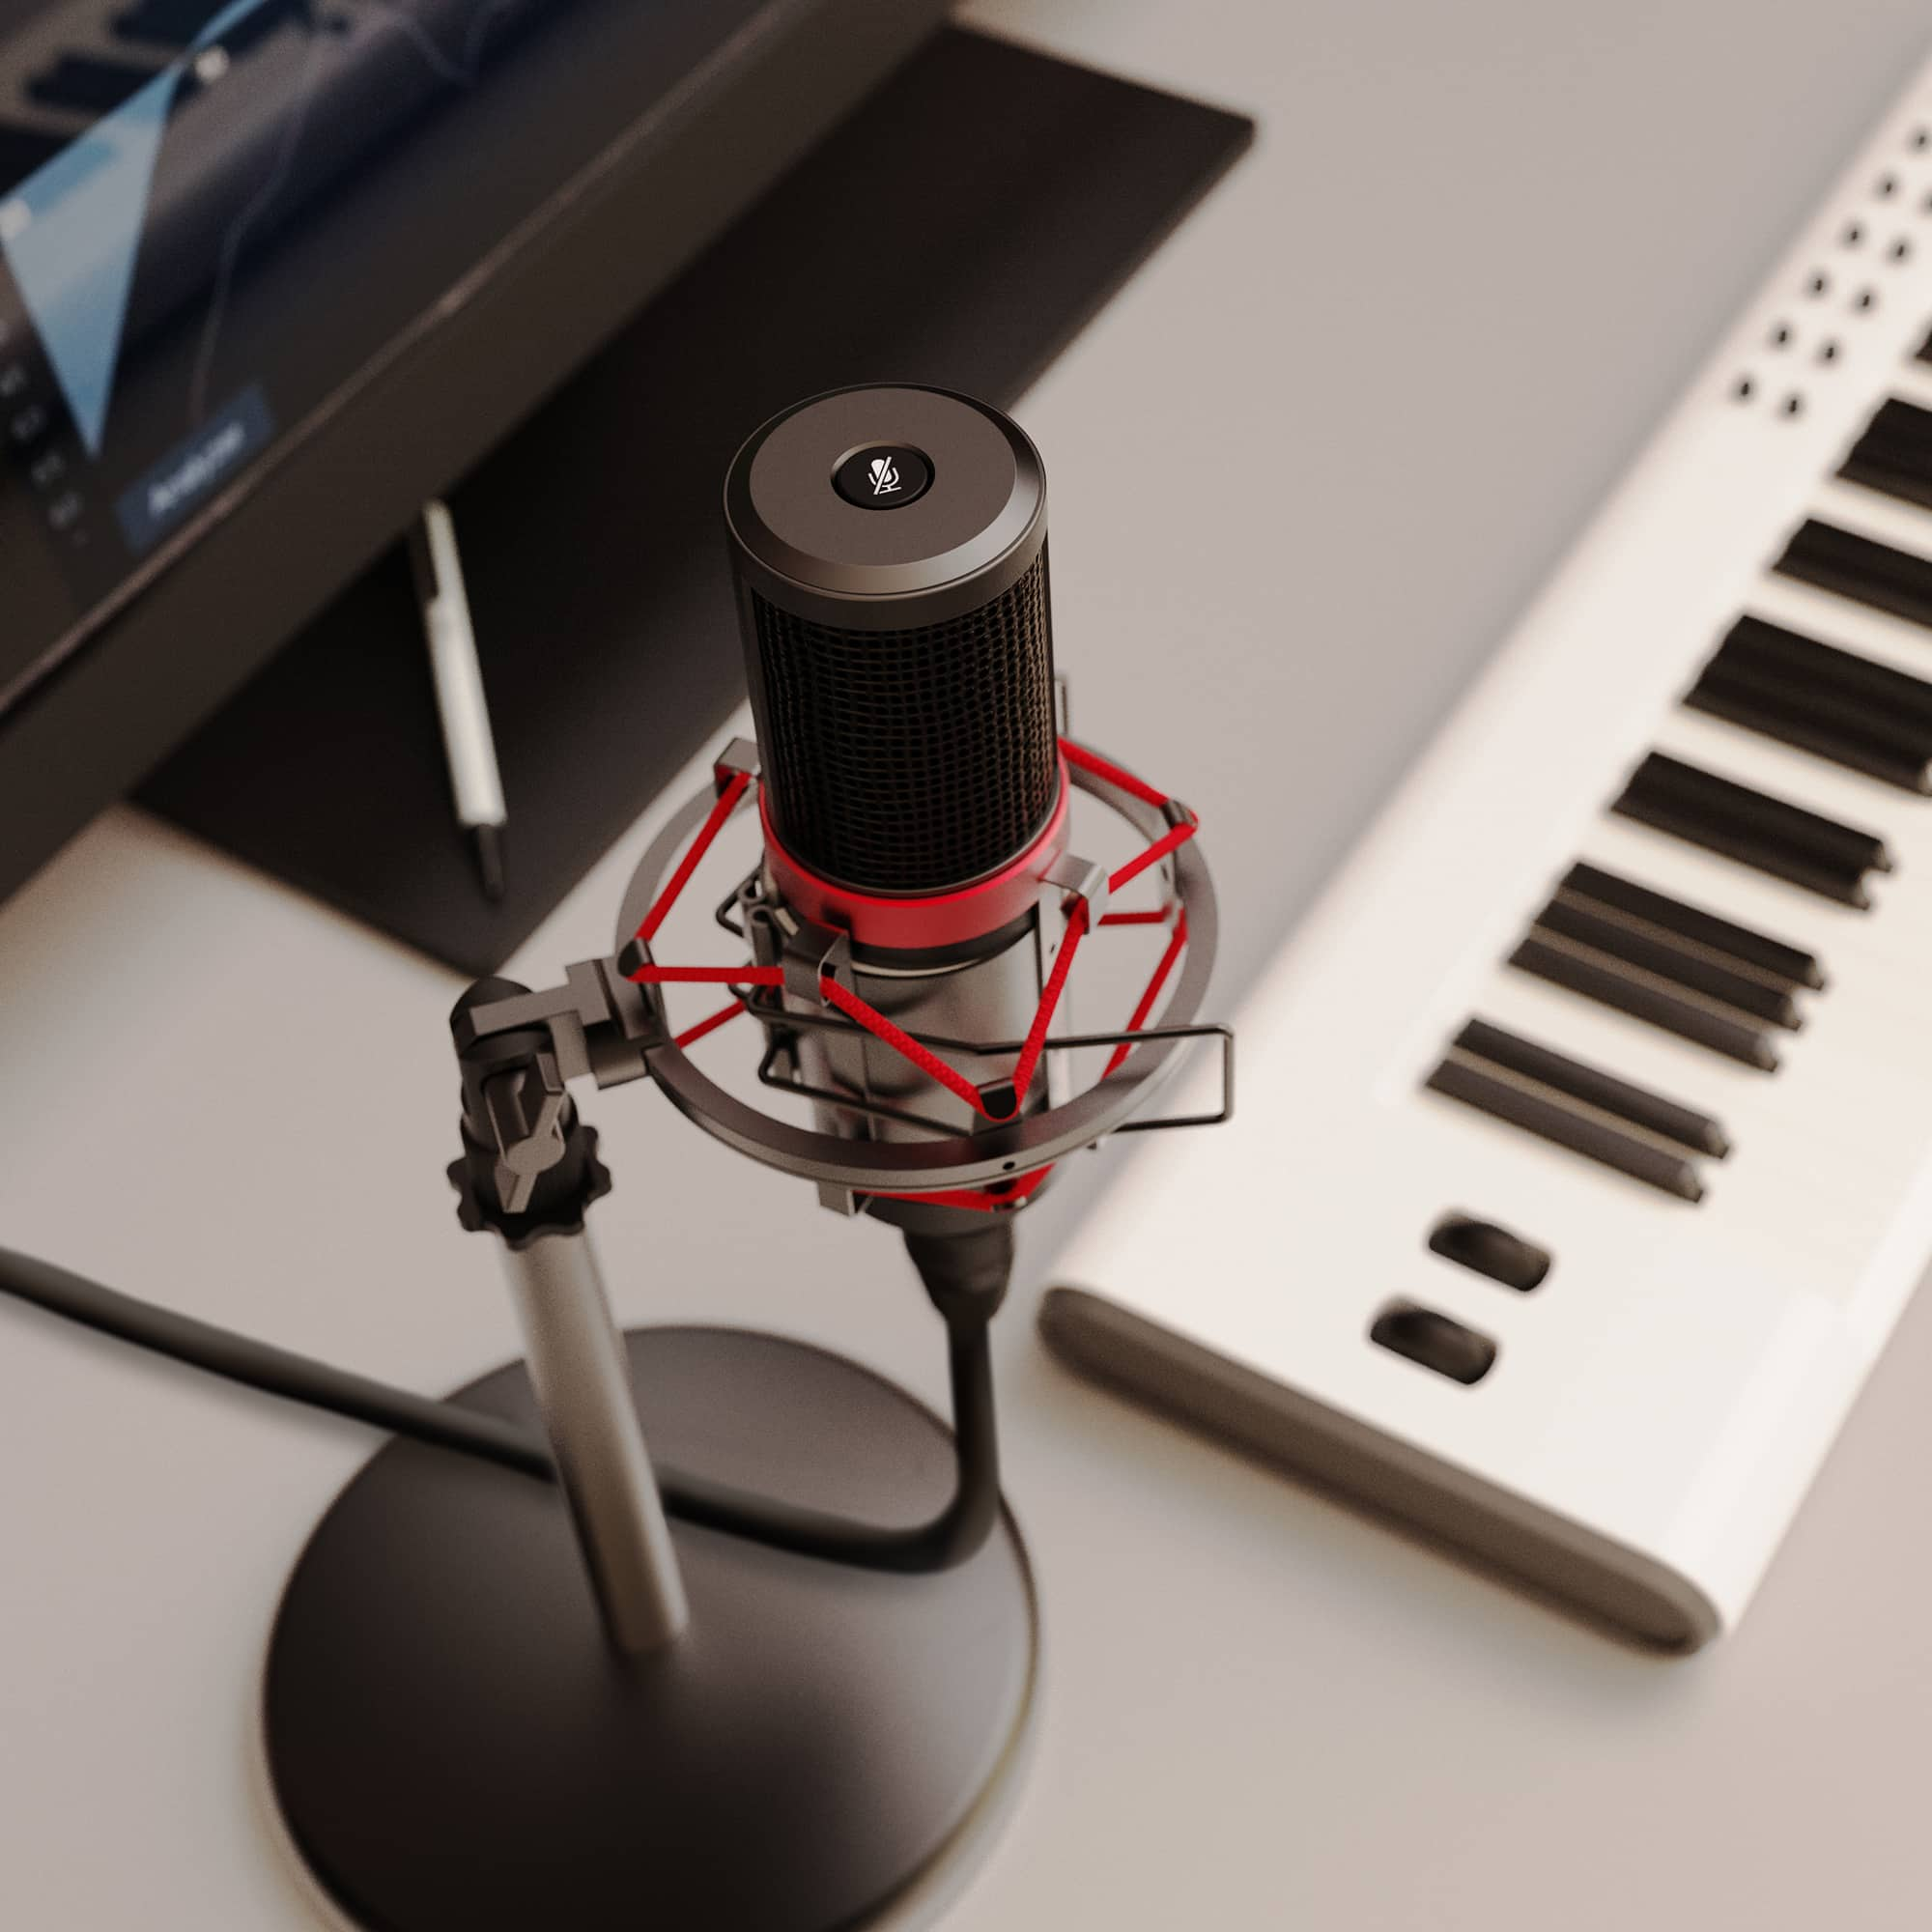 PC Condenser Microphone - RS Pro Lifestyle